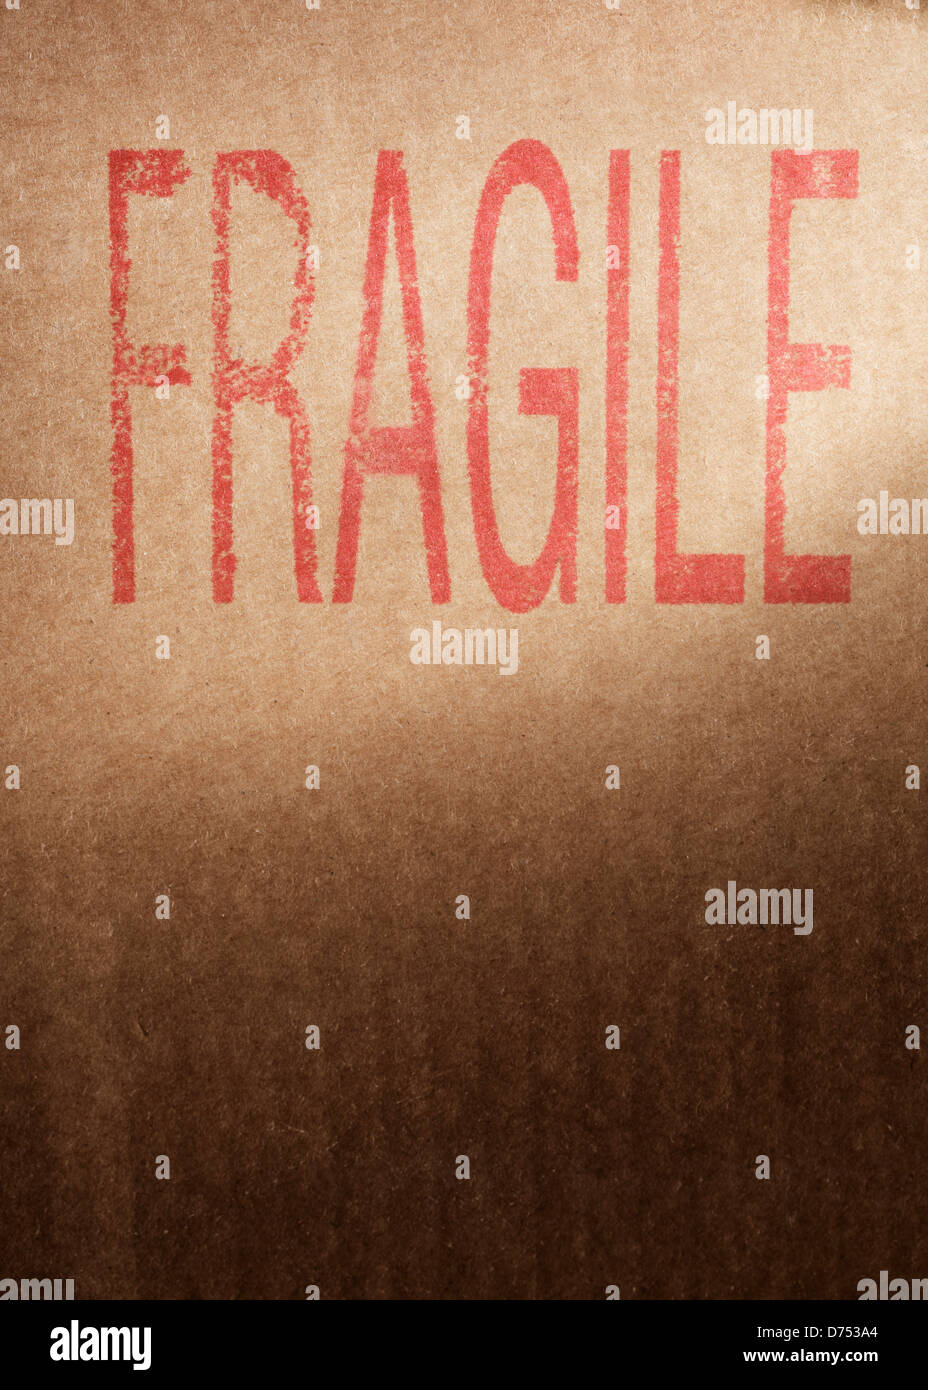 Closeup of a brown cardboard box with word 'Fragile' stamped with red ink. - Stock Image